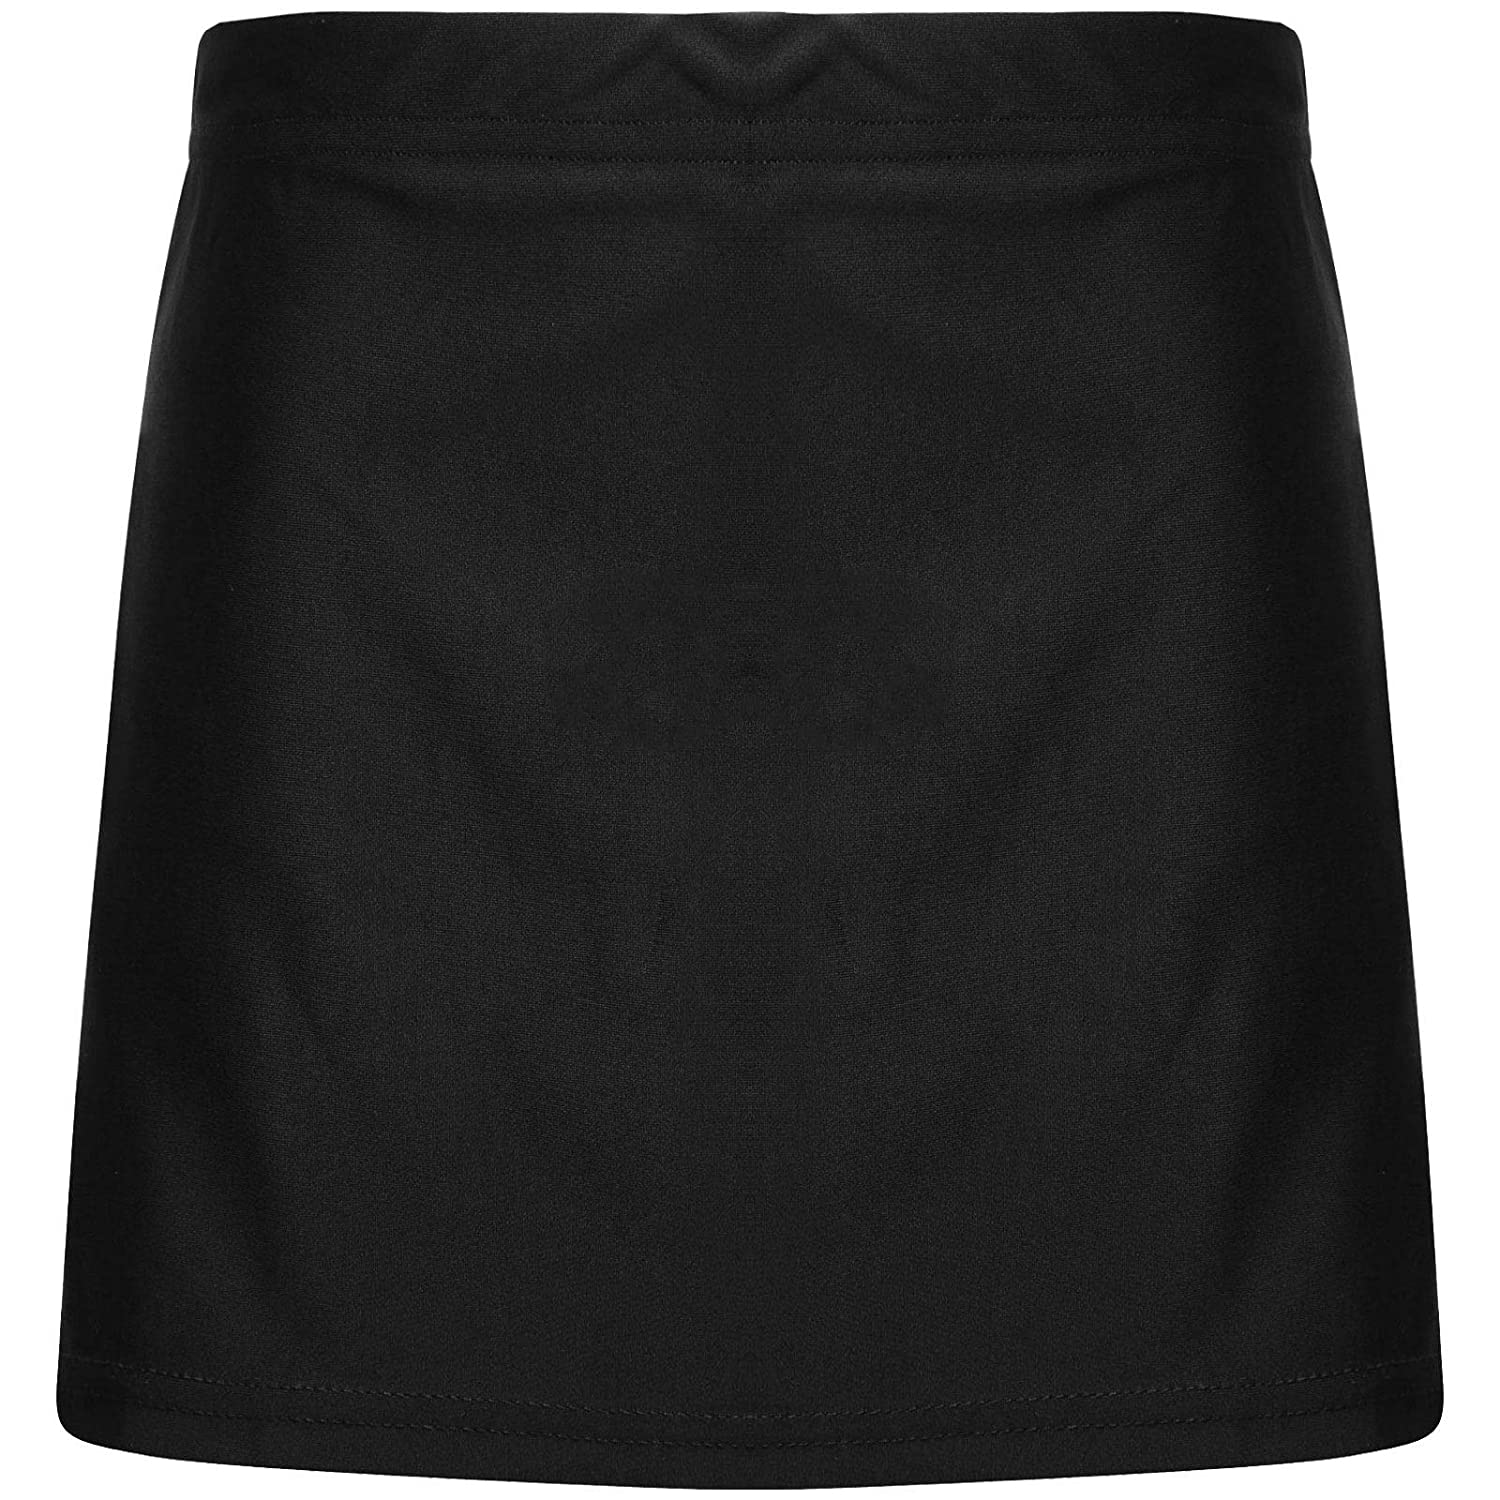 GIRLS SKORT OUTER SKIRT AND BASE LAYER SHORTS LADIES PE UNIFORM SCHOOL SPORTS